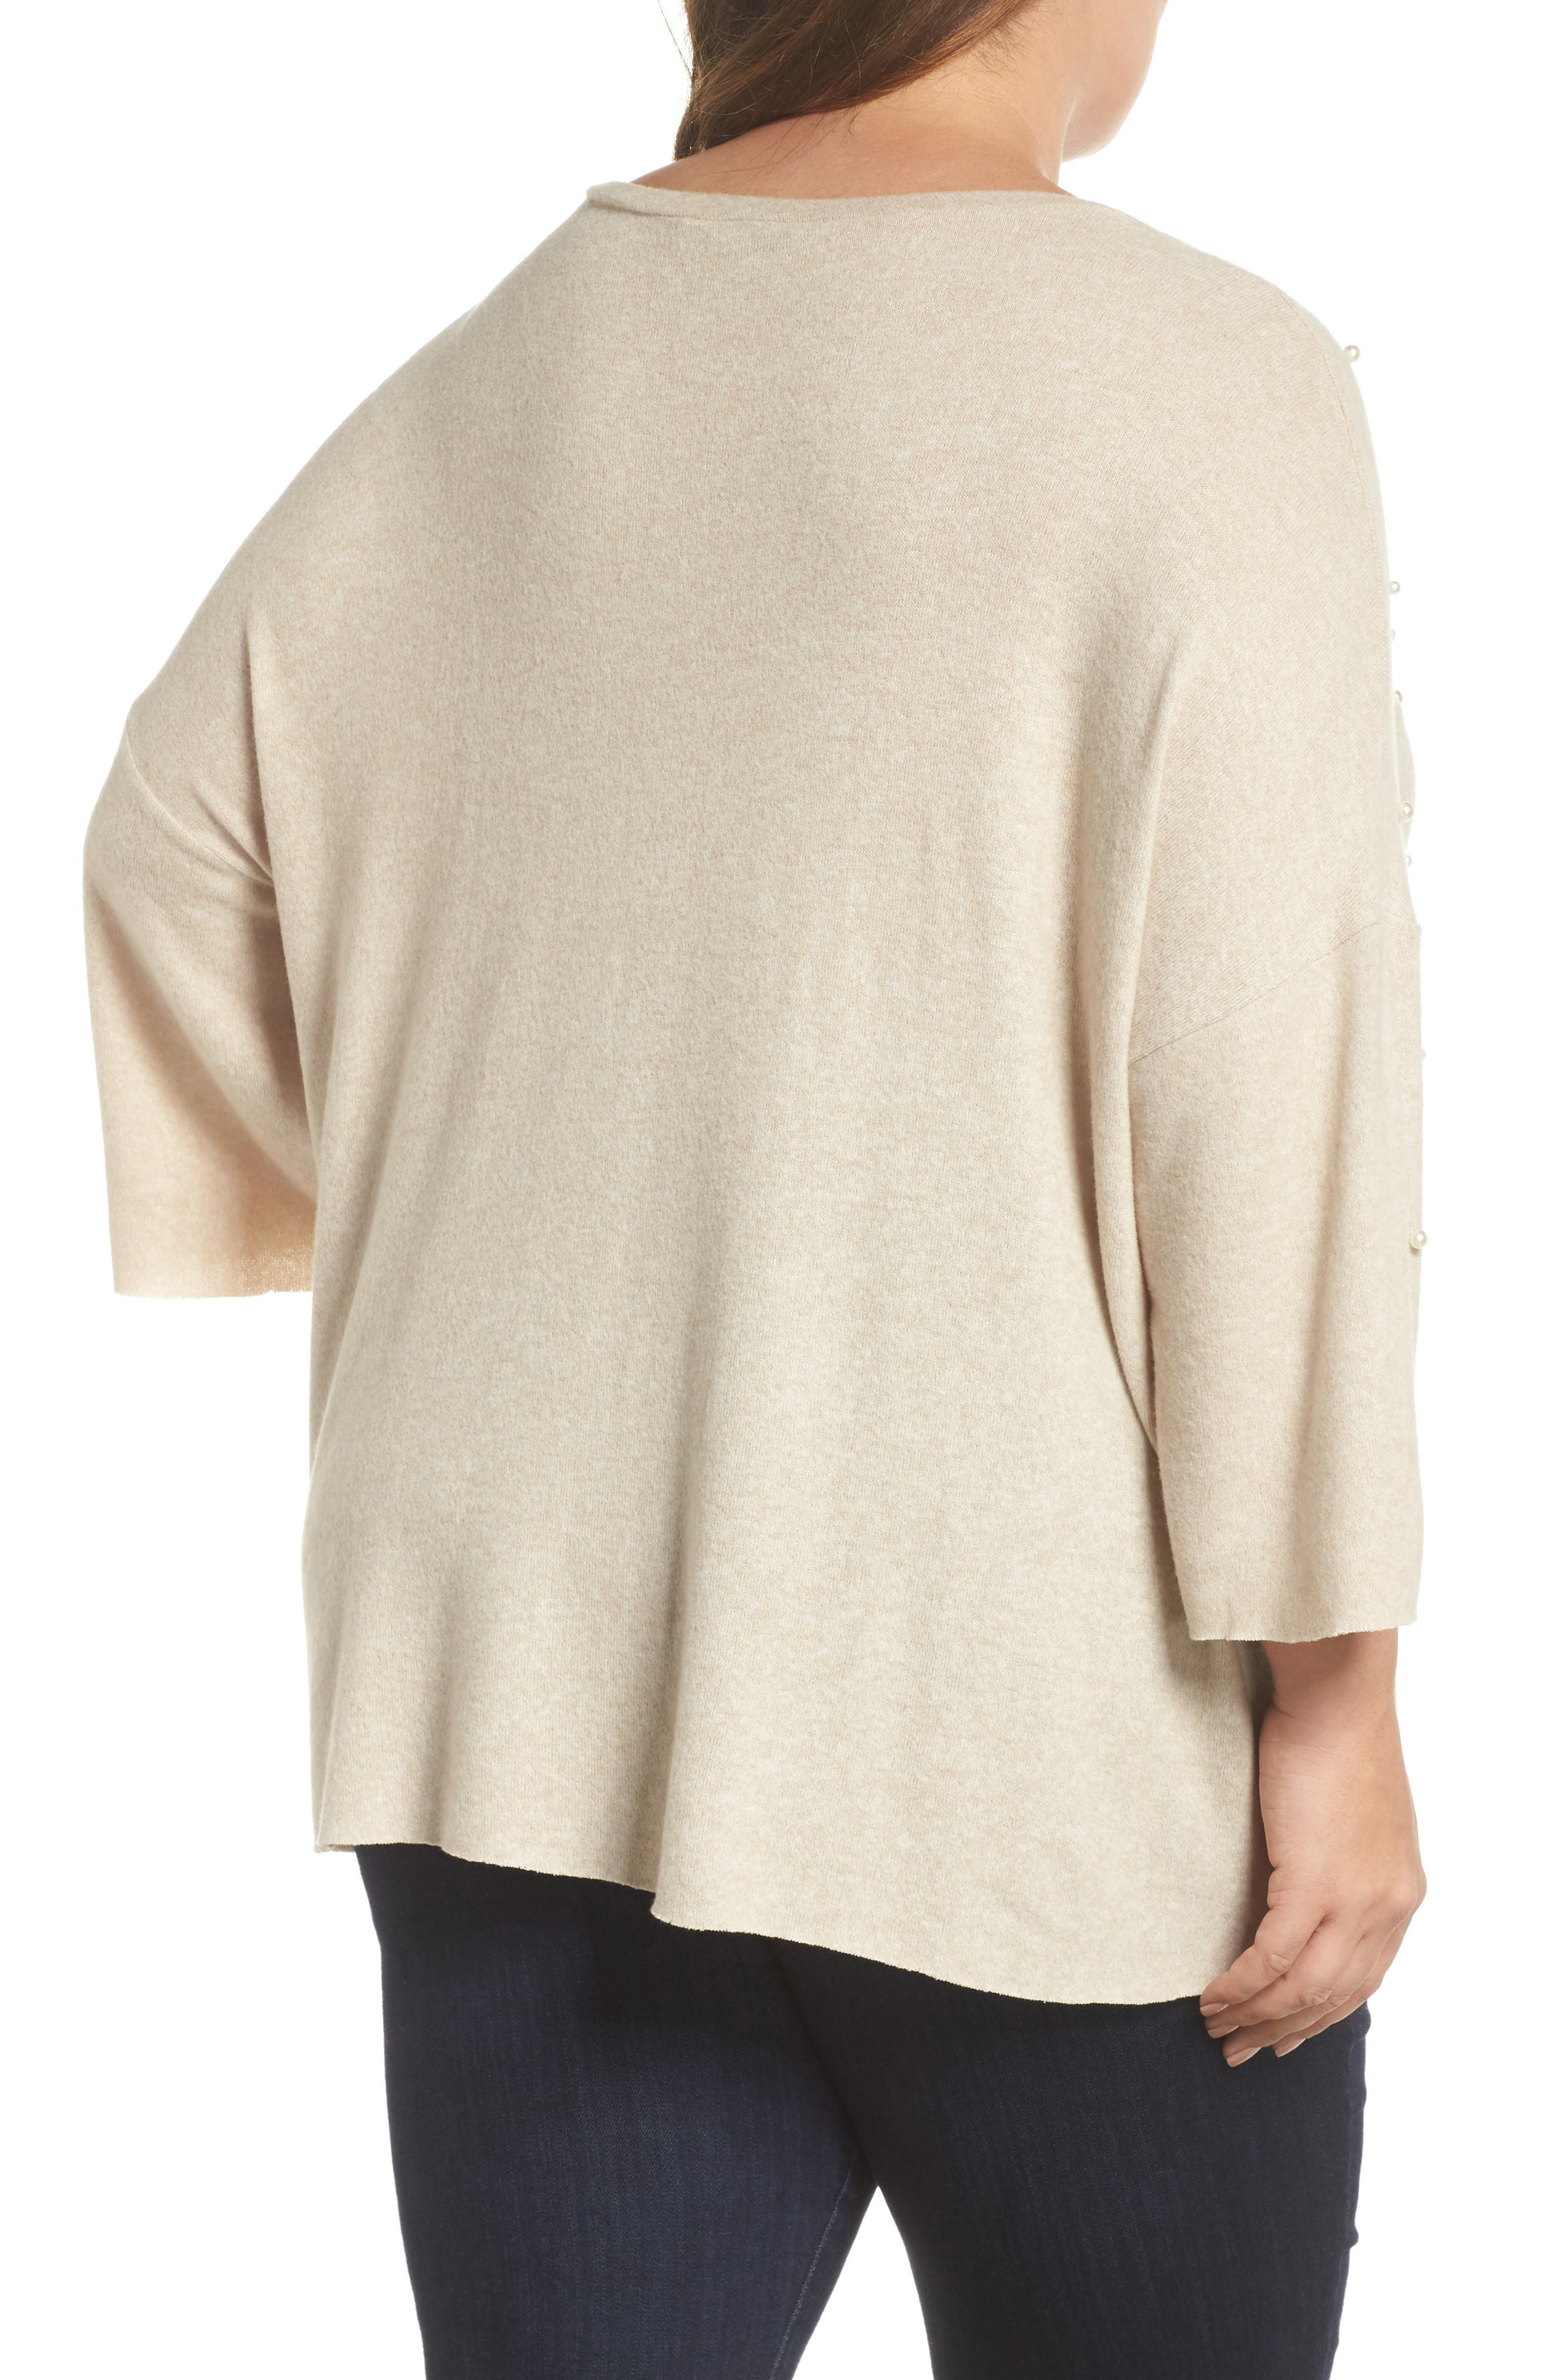 Pearl Embellished Sweater,                             Alternate thumbnail 2, color,                             Oatmeal